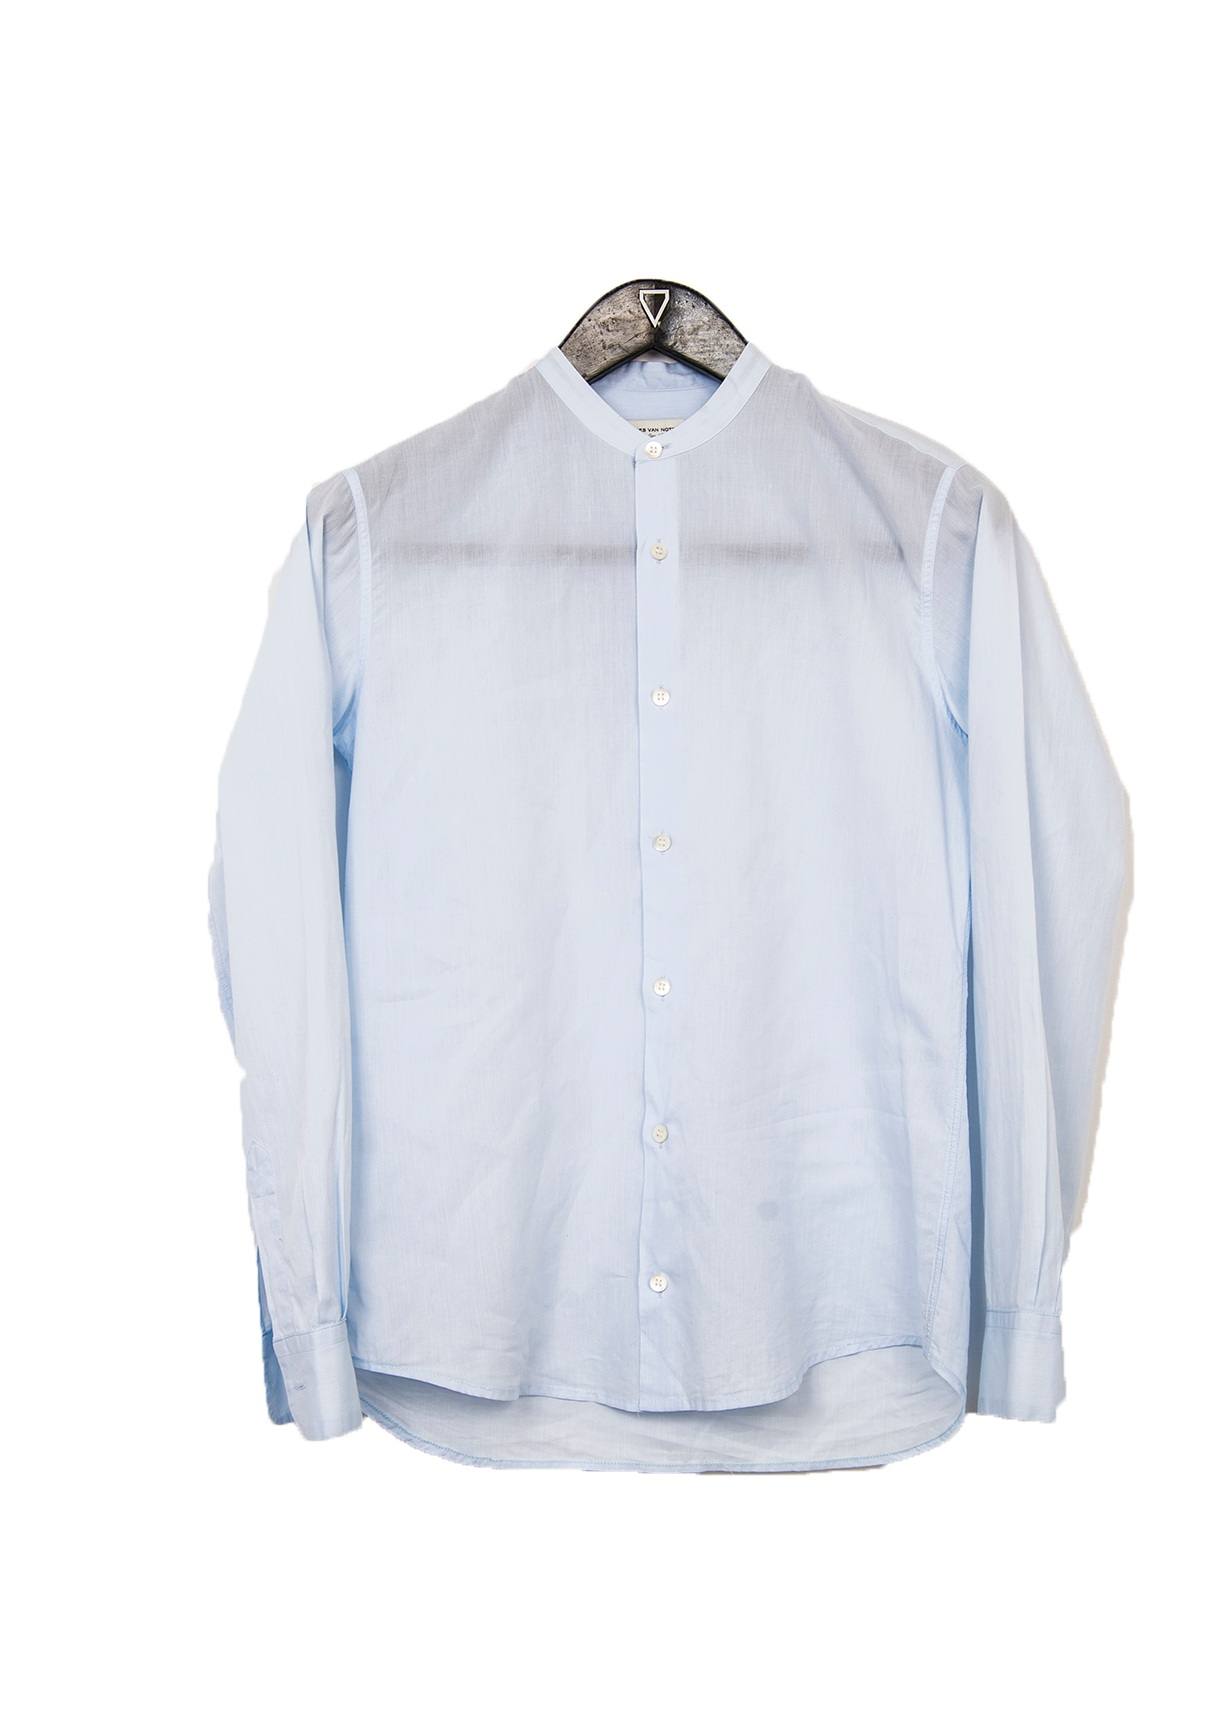 "M DRIES VAN NOTEN SHIRT ""DRIES-SH02"""